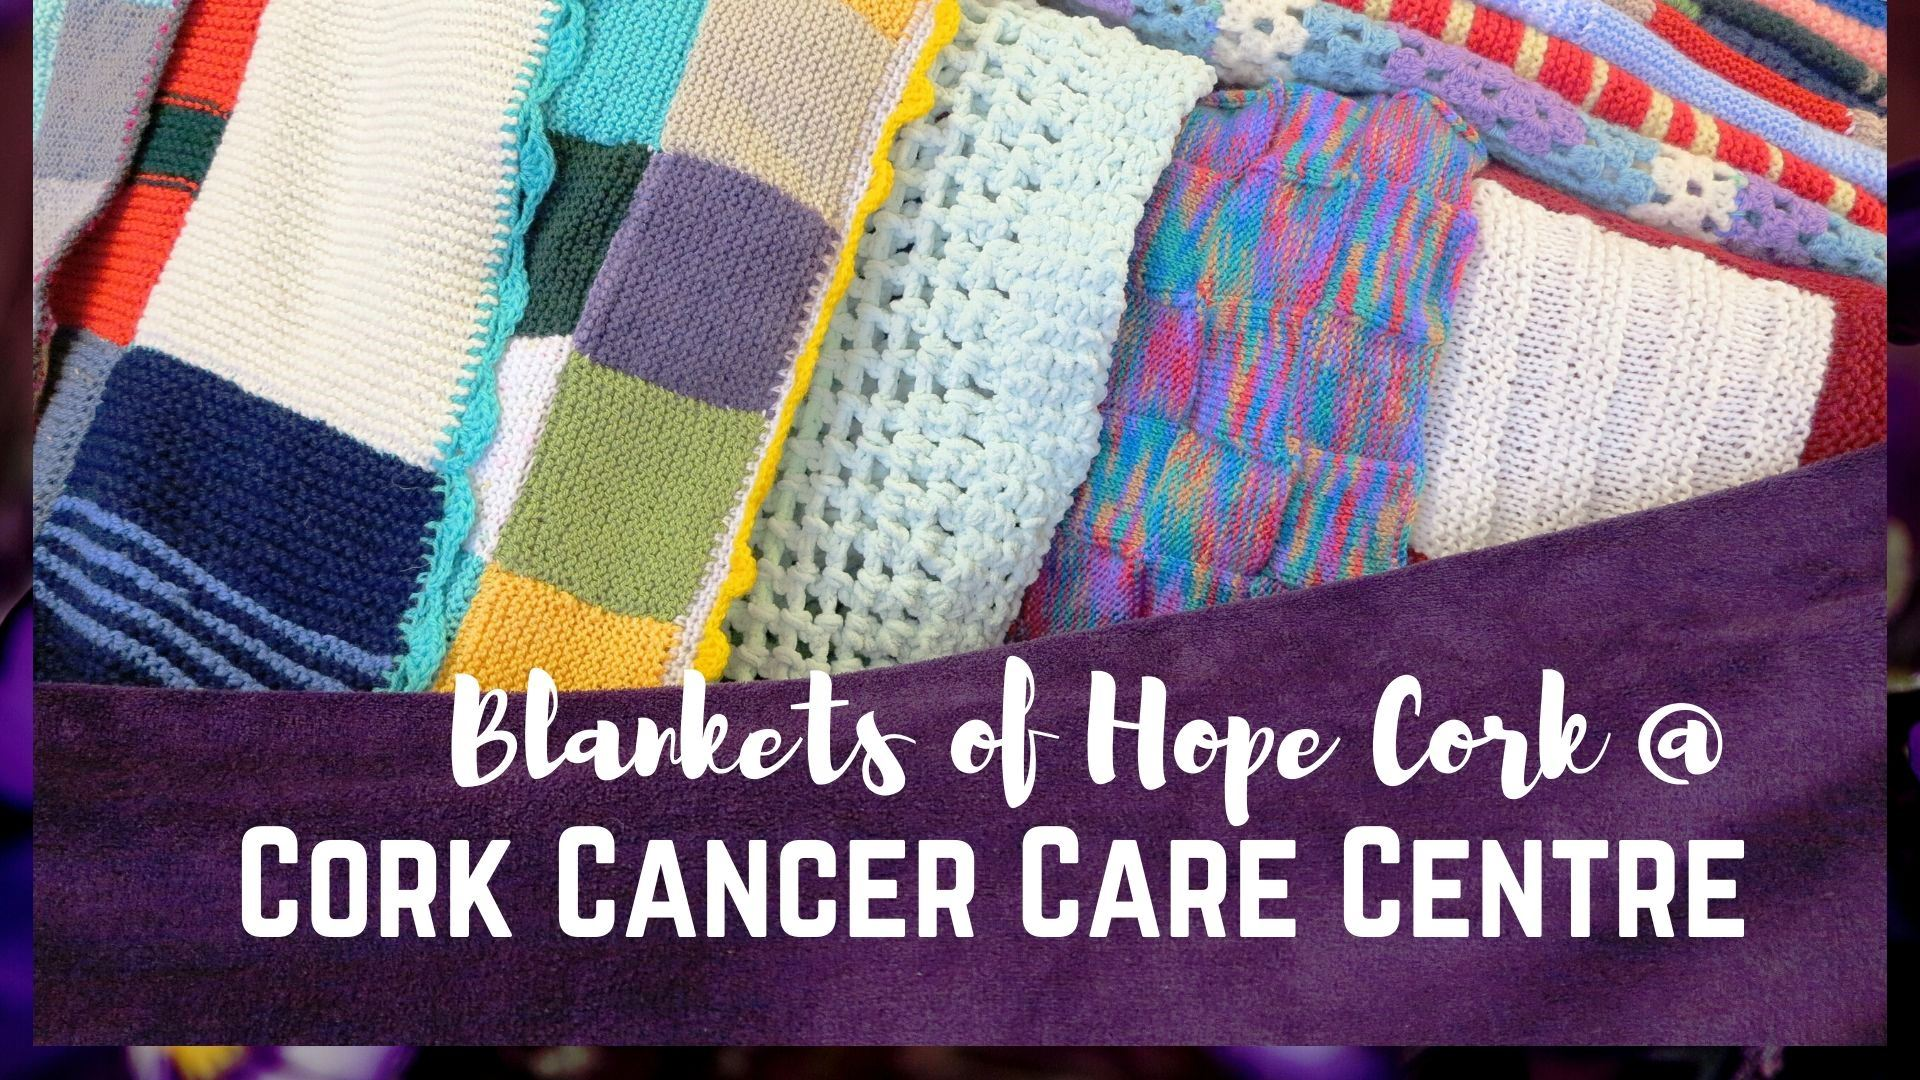 The Blankets Of Hope Cork at Cork Cancer Care Centre